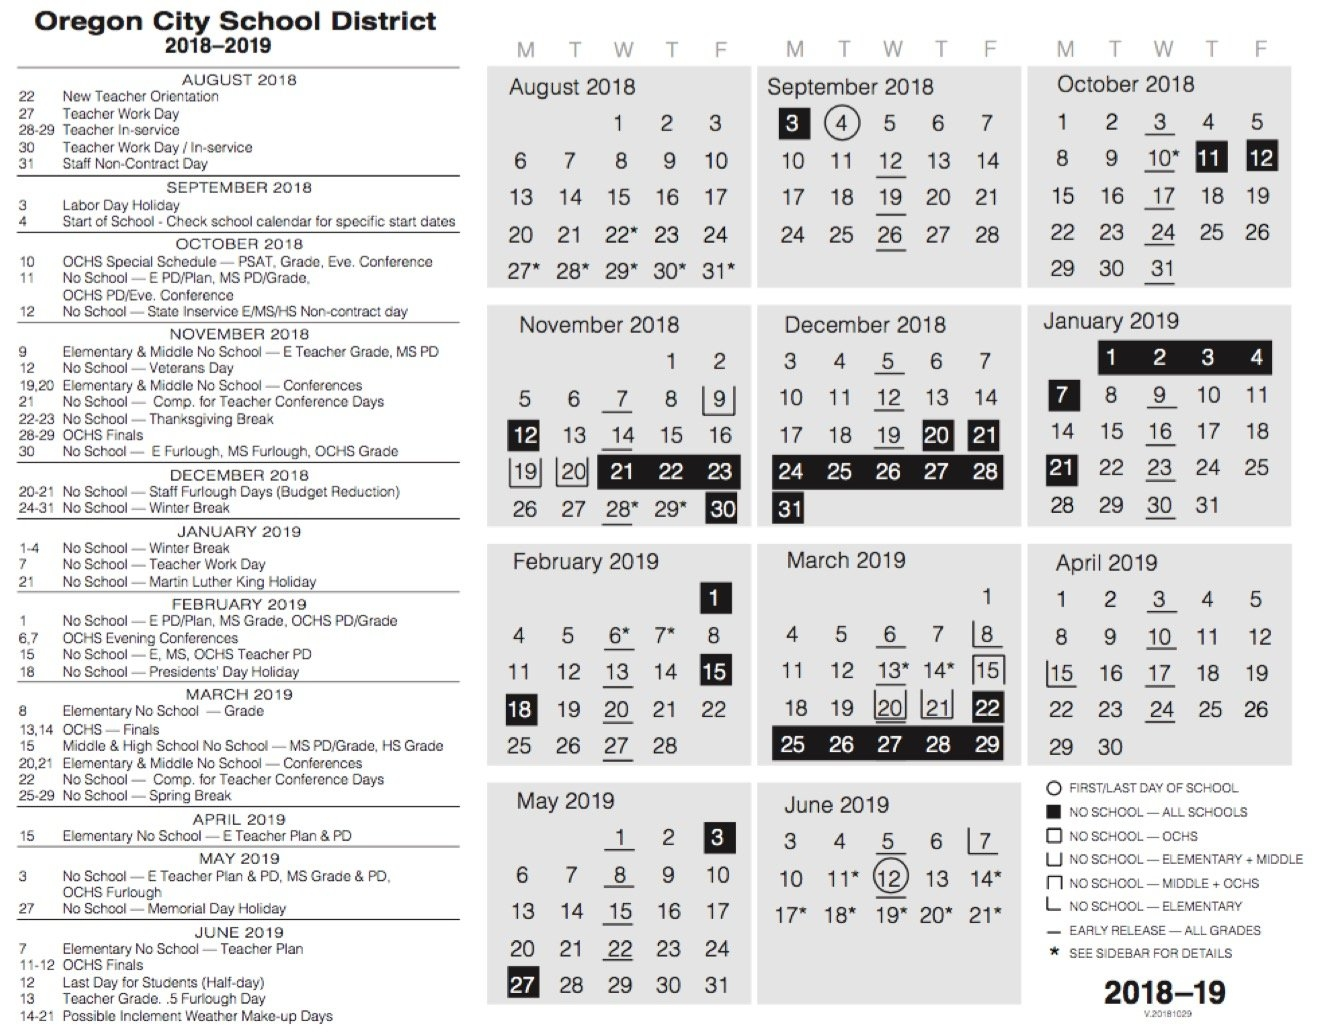 Calendar | Oregon City School District Ccsd Calendar 2019-20